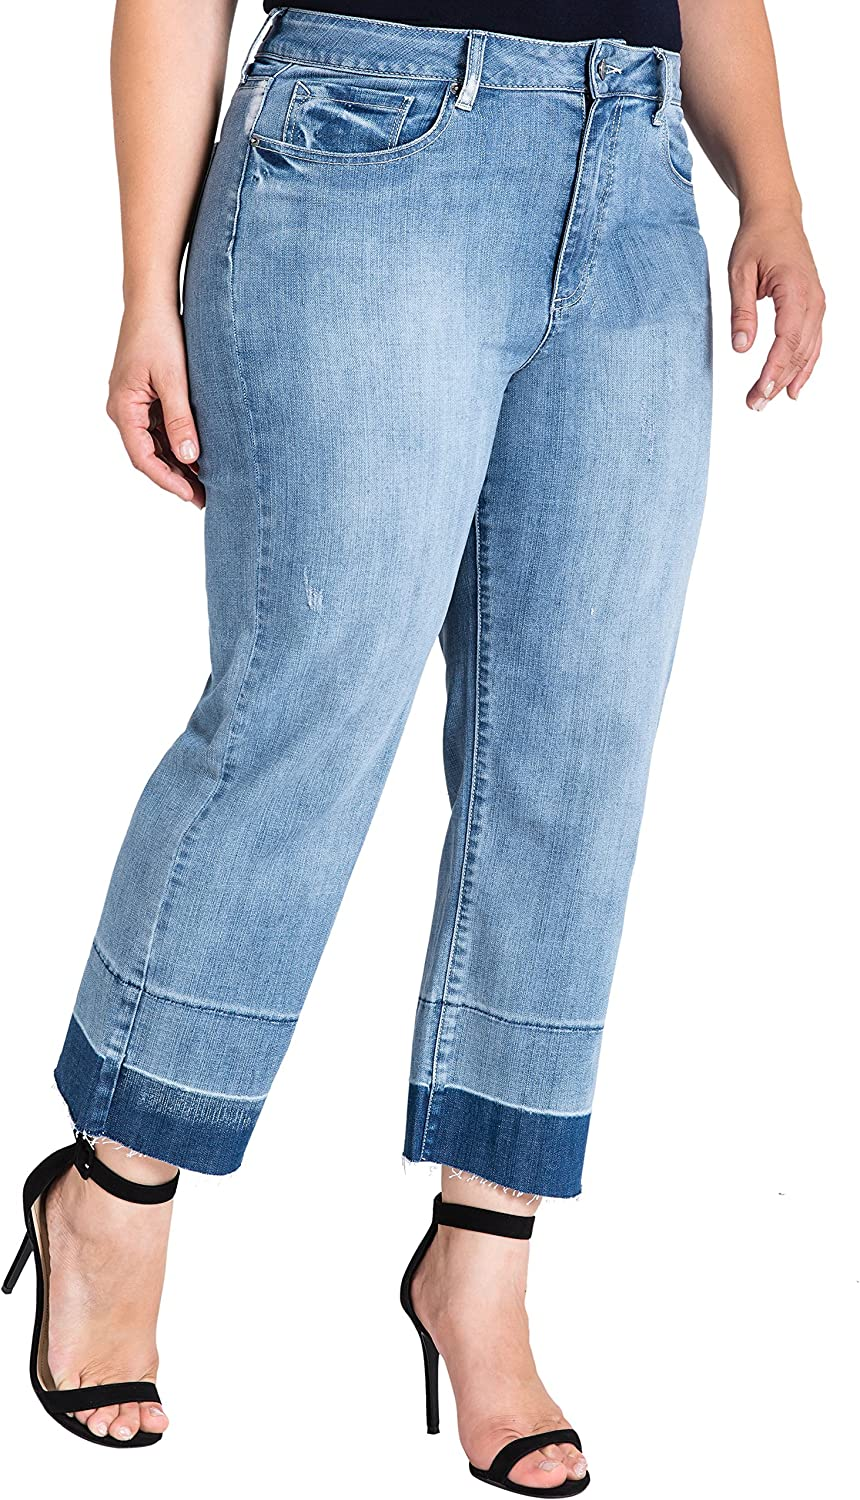 Standards & Practices Plus Size Women's Raw Hem Frayed Cropped Premium Jeans